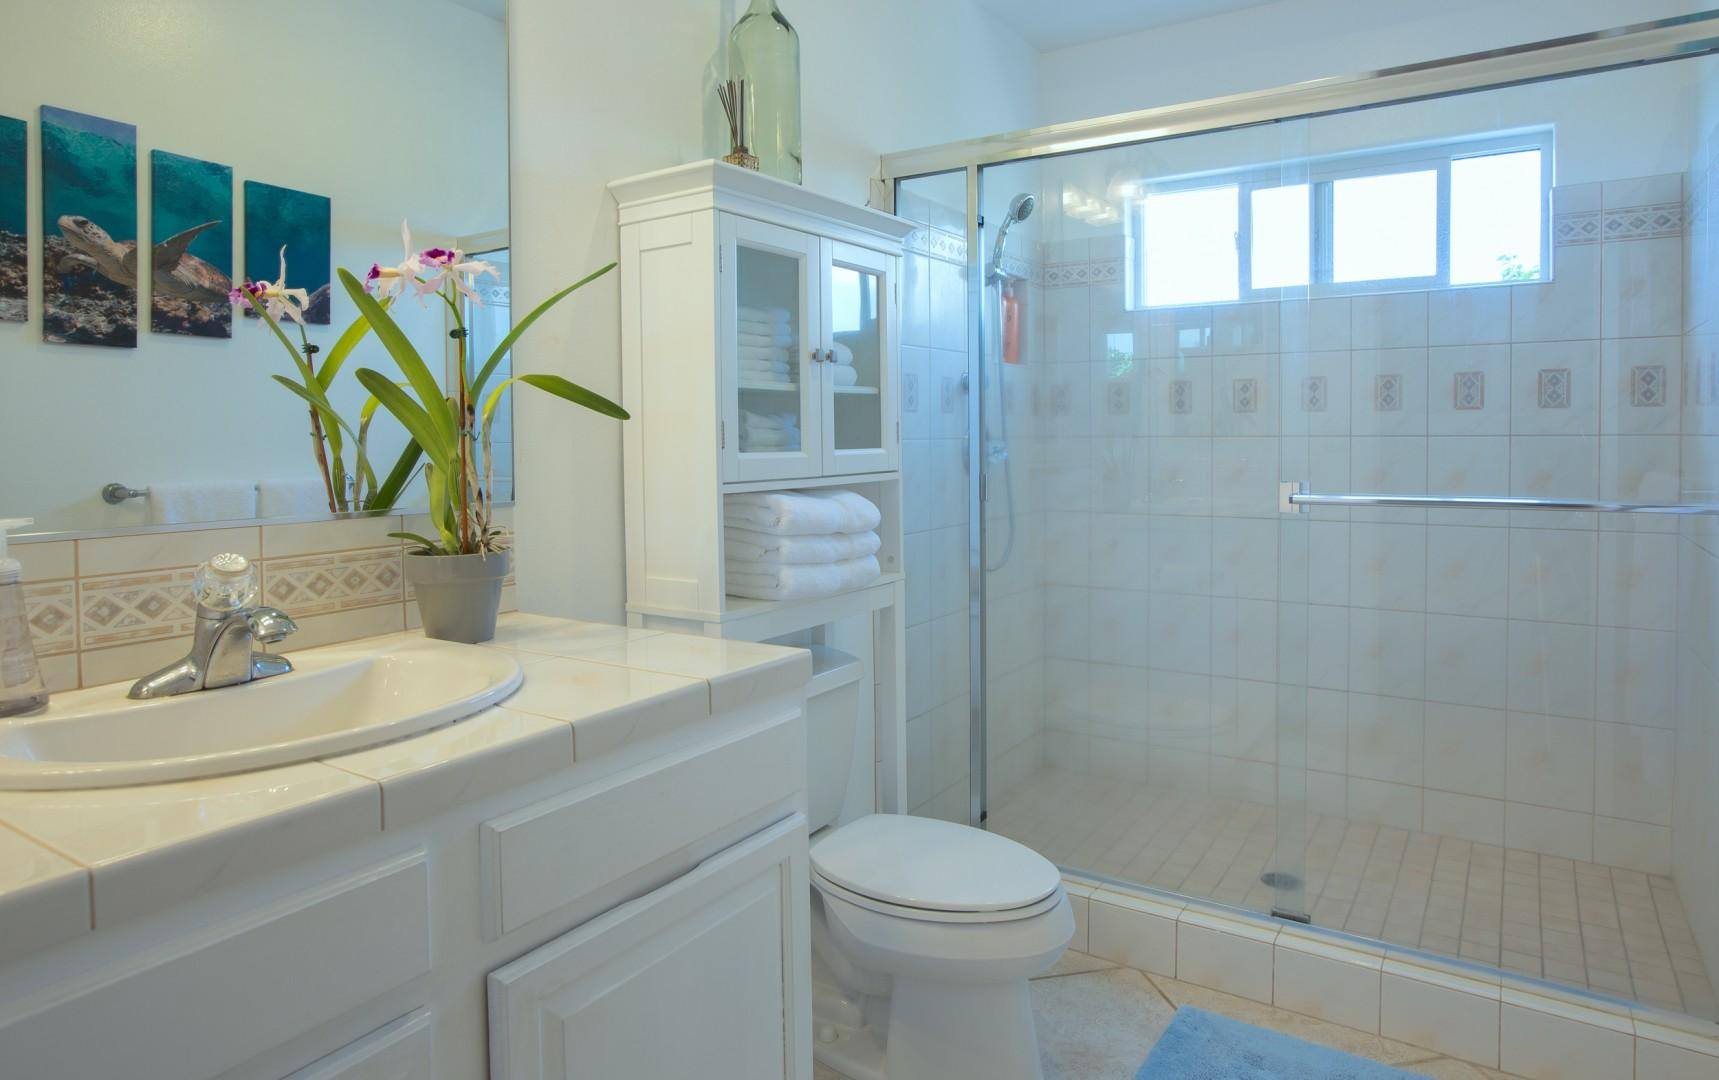 The bright and spacious second bathroom is right off the second and third bedrooms in the hallway.